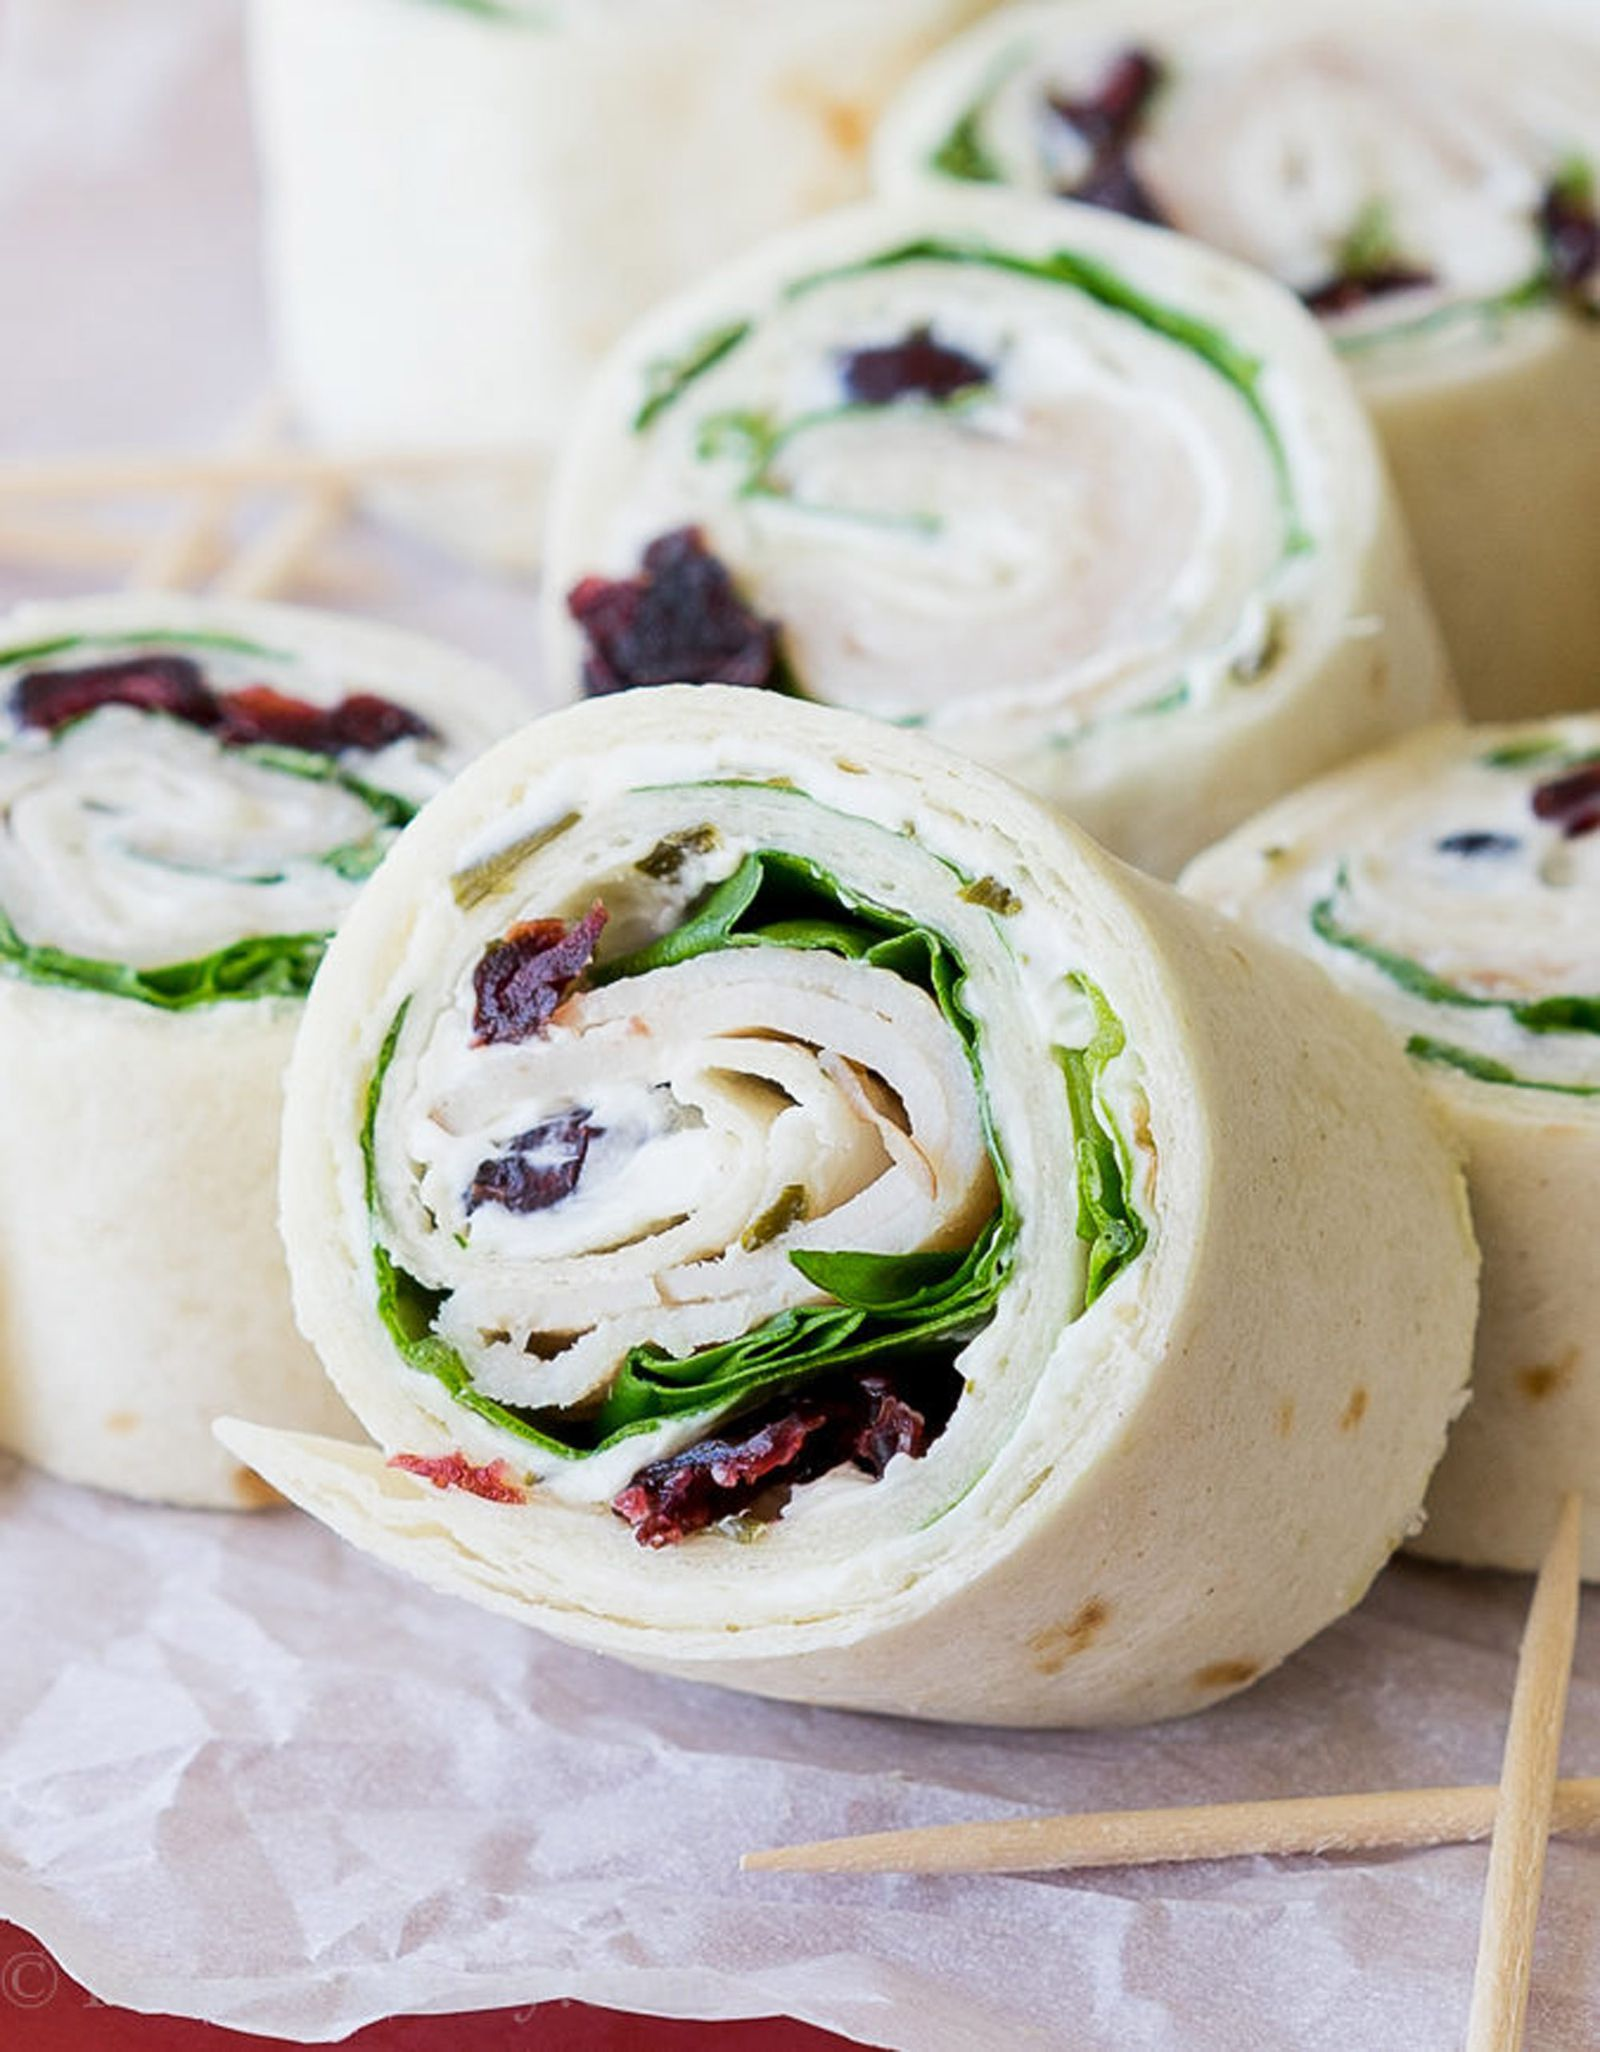 Hearty fall appetizer recipes that are perfect for chilly